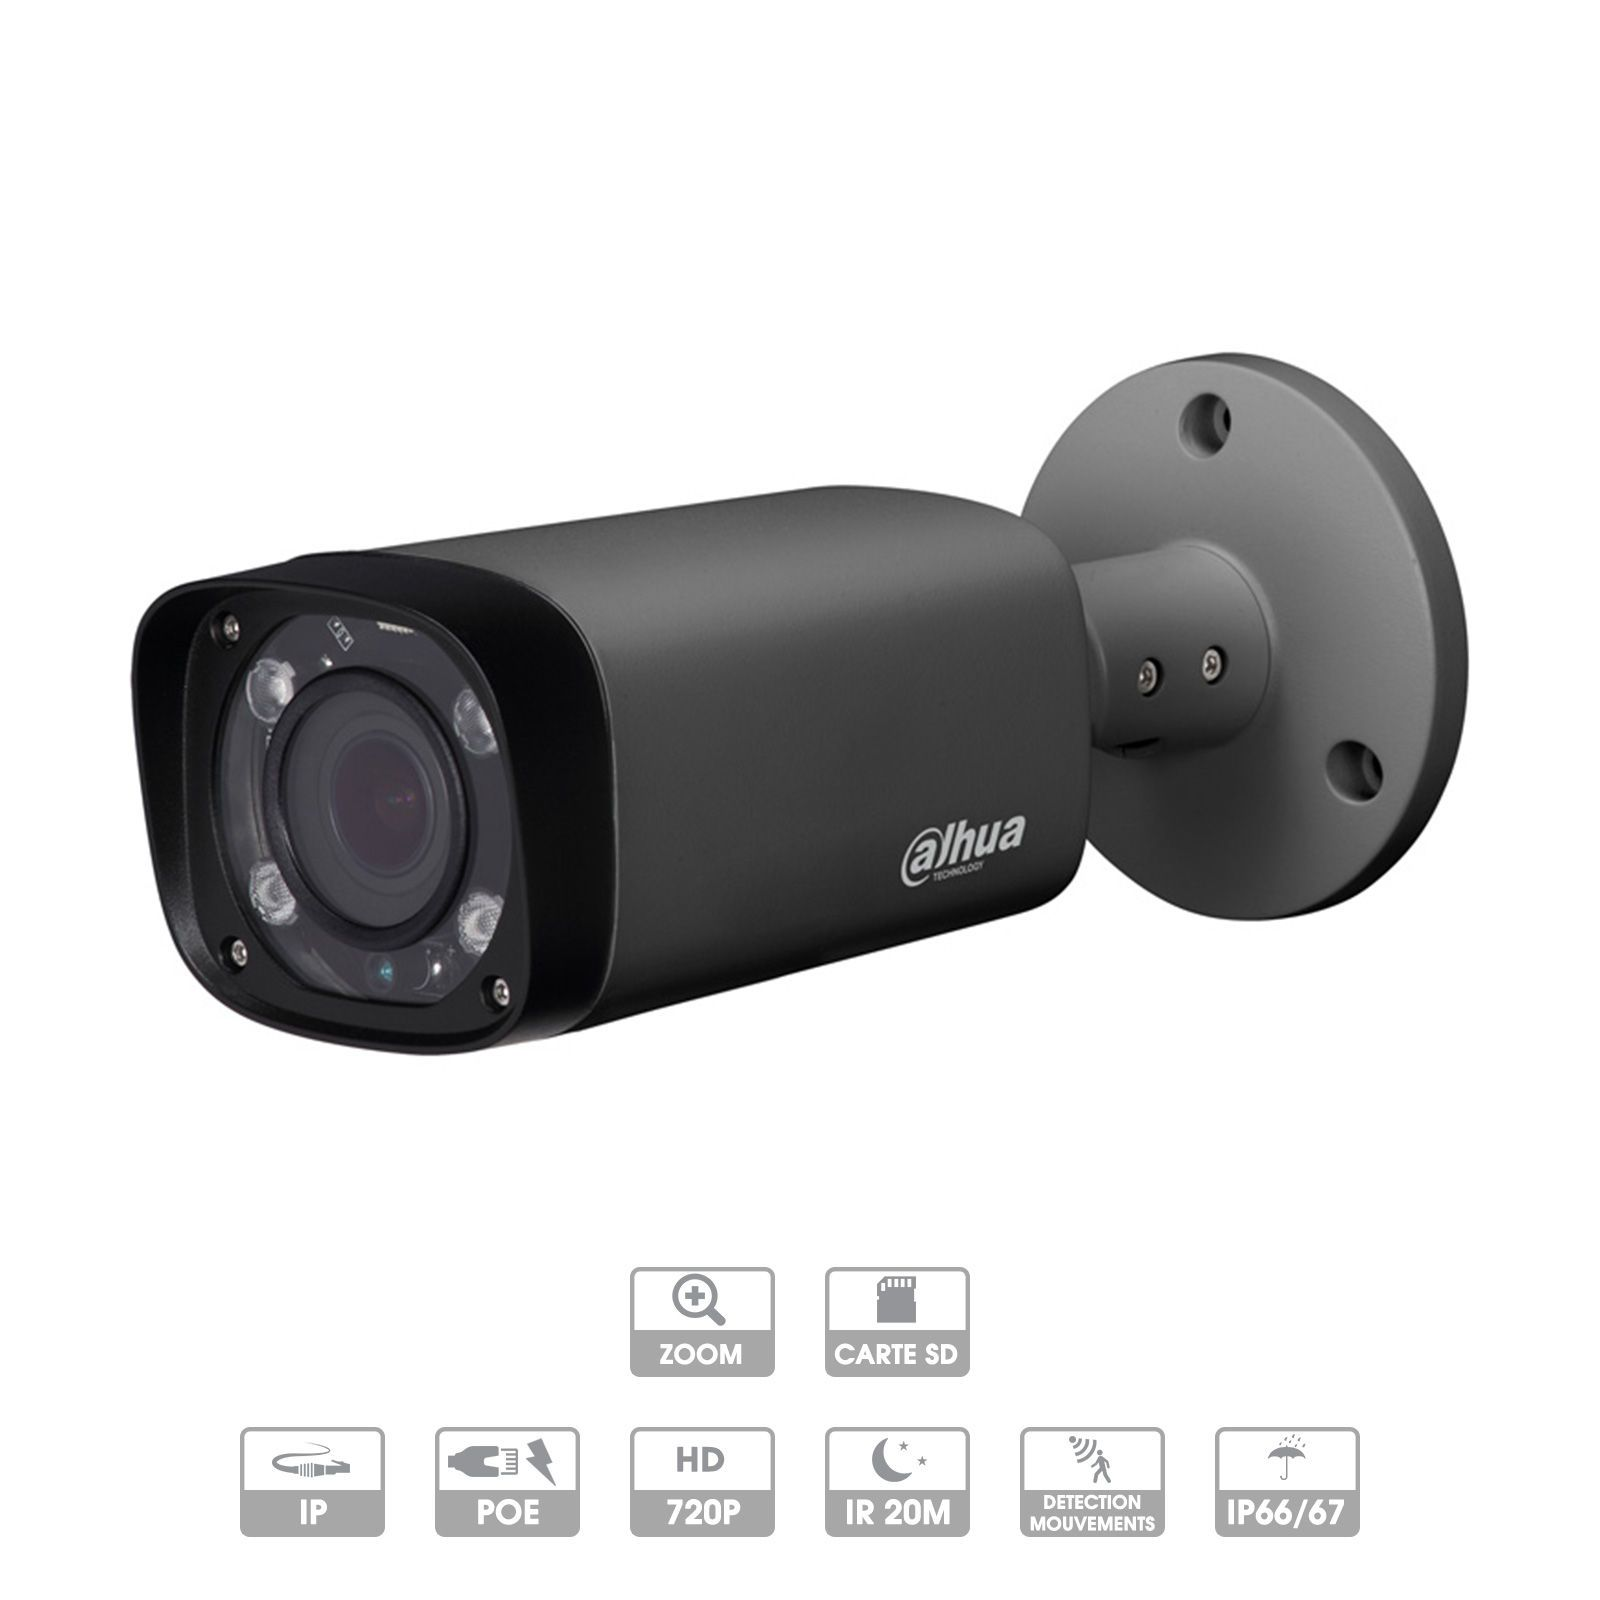 CAMERA DAHUA IP TUBE 3 MP DARK GREY